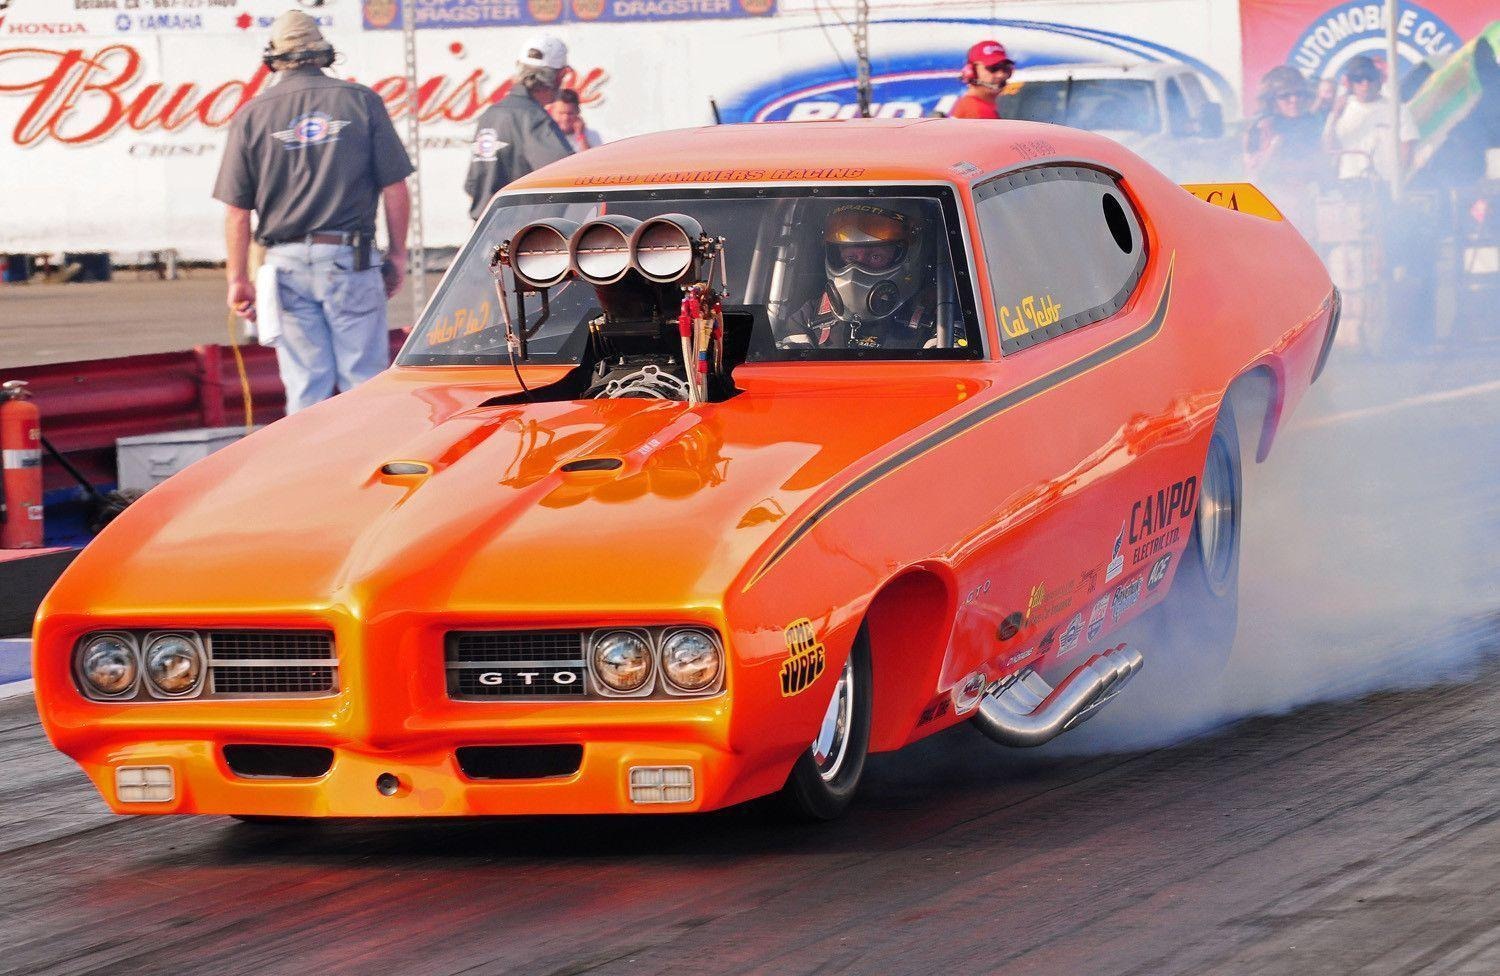 funny cars 1969 drag pontiac gto wallpapers racing race desktop dragster judge wallpapersafari hdwallpapers gtos background nhra vehicles arnie beswick